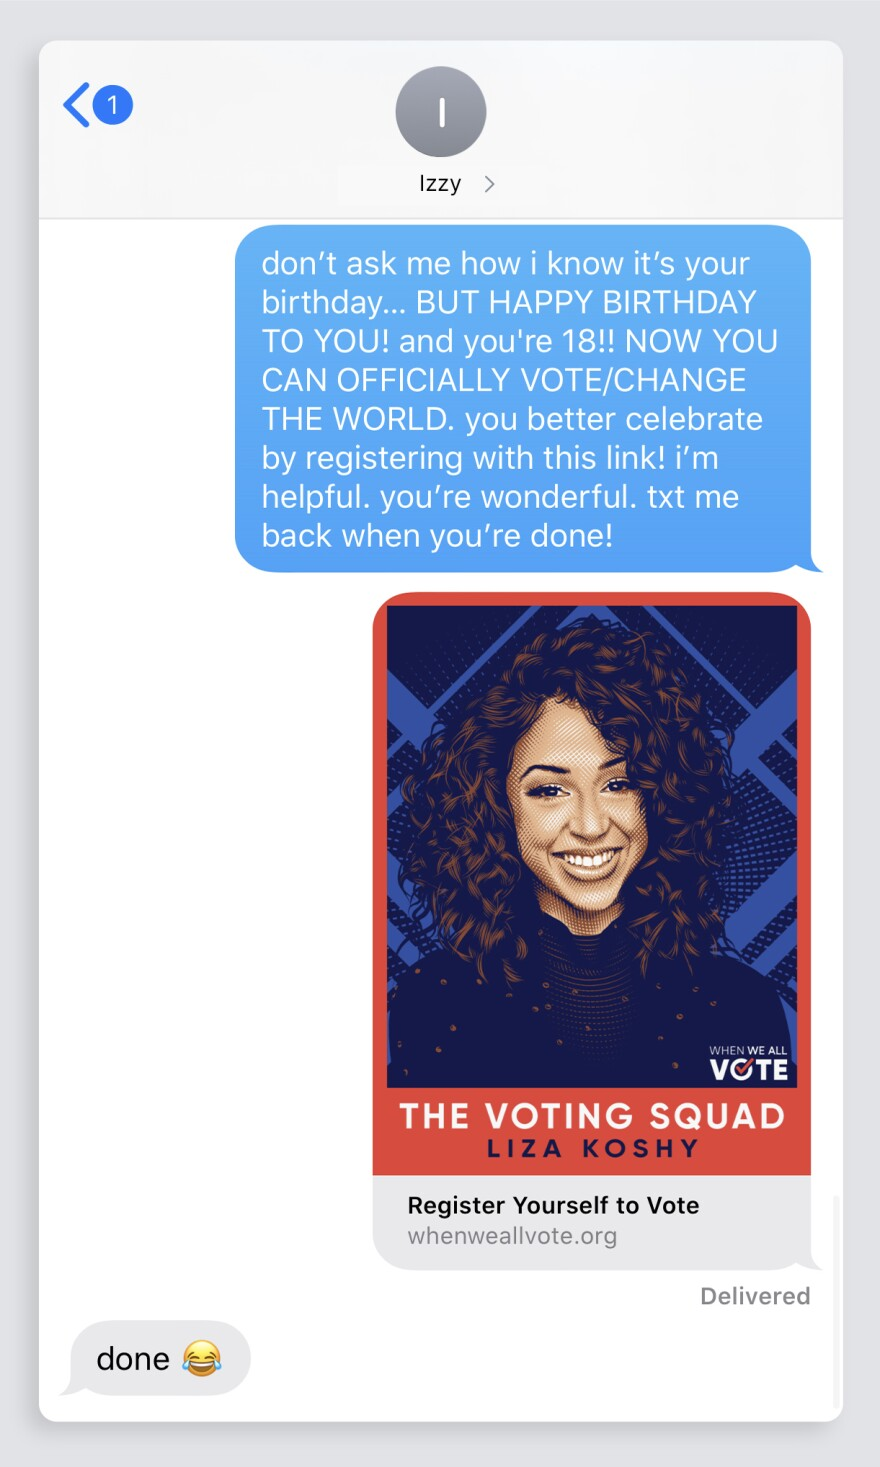 As an outreach effort, When We All Vote teamed up with a text messaging platform to remind young voters to register.